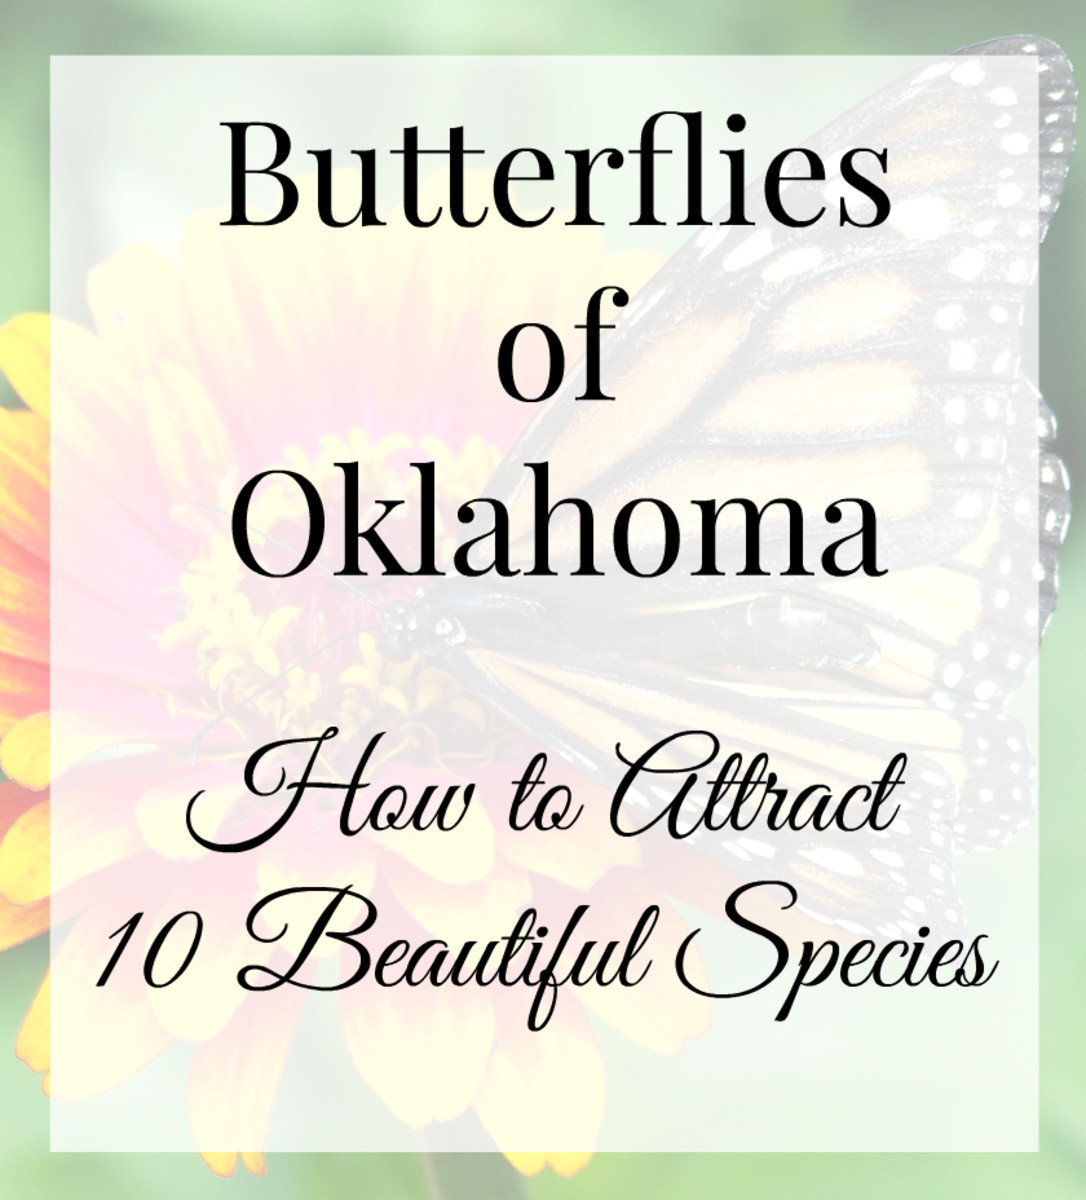 butterflies of oklahoma ten beautiful species and how to attract